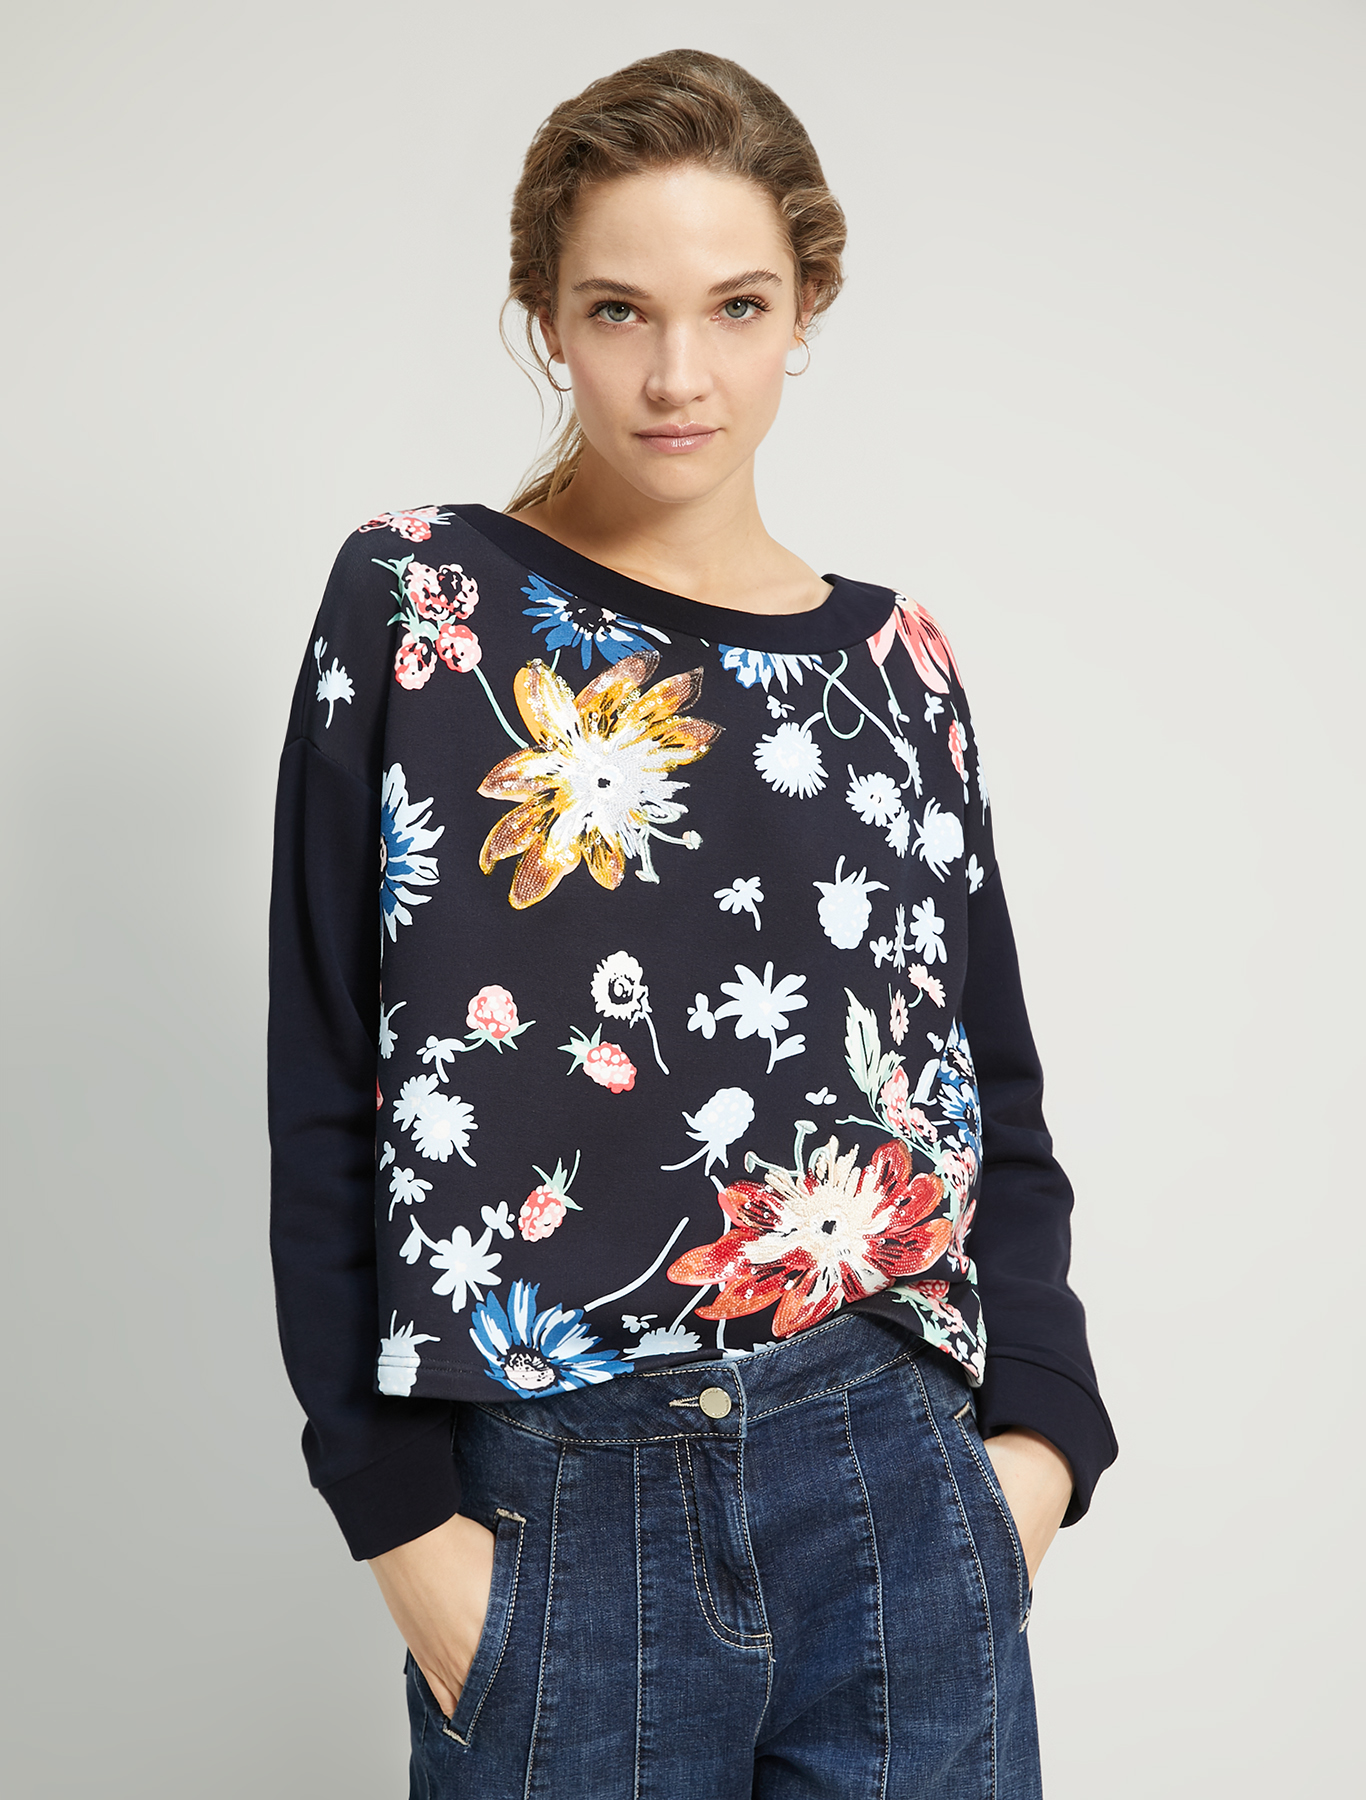 Sweatshirt with print and embroidery - navy blue - pennyblack